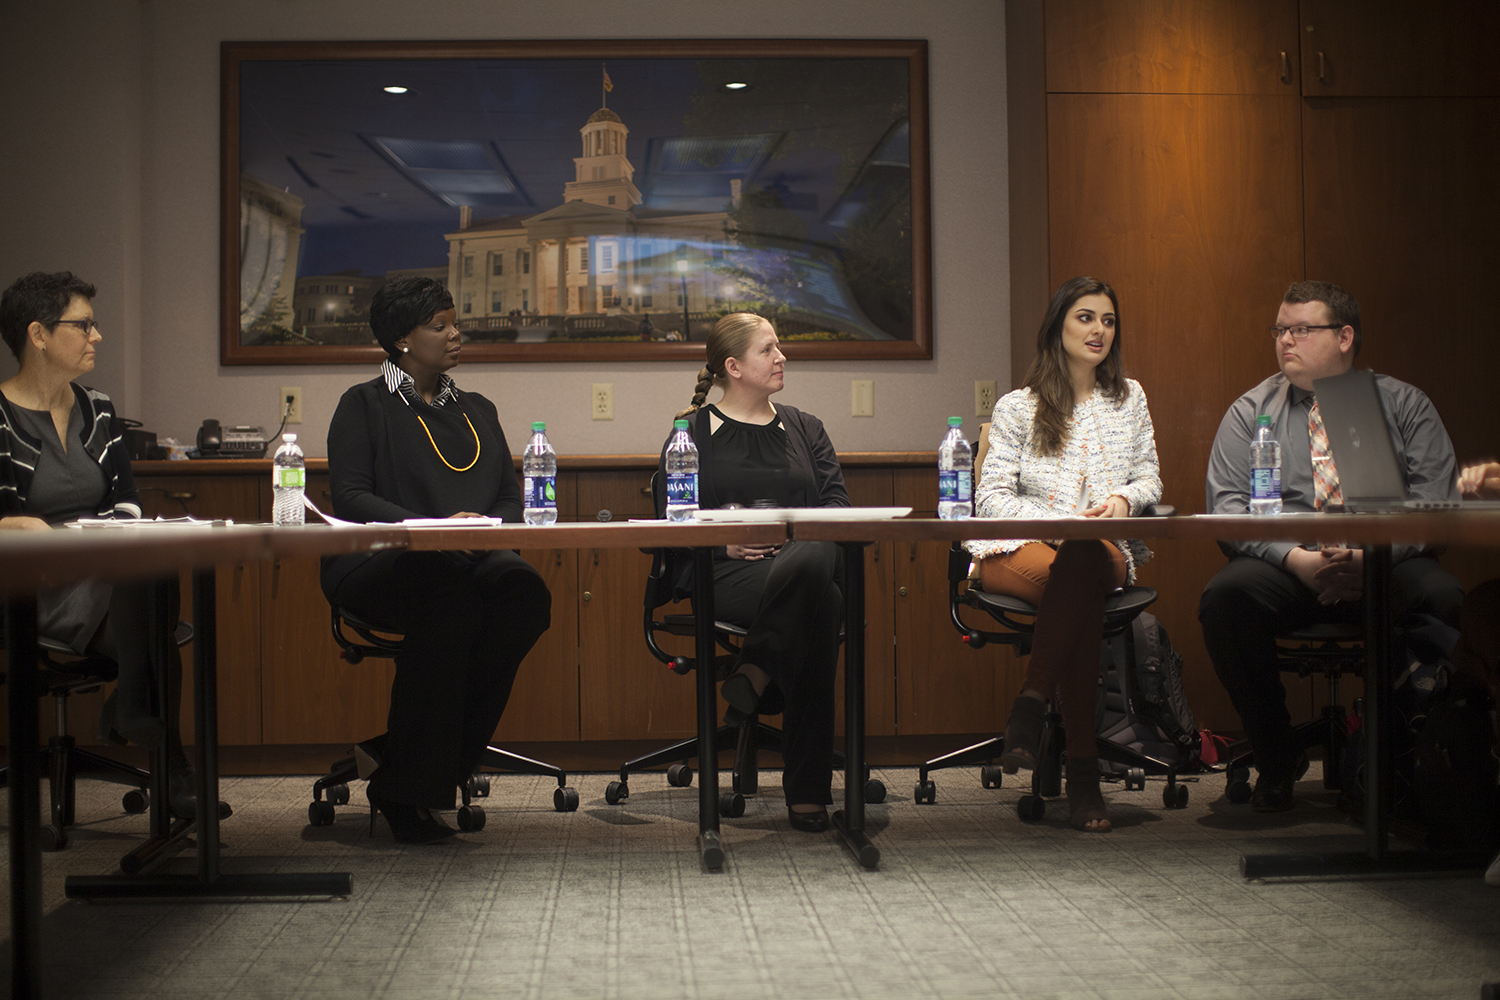 Members of the Diversity, Equity, and Inclusion Action Plan Development Group and shared governance meet in the IMU on Thursday, April 4, 2019. The group discussed the campus-climate survey results and unveiled the UI's new Diversity, Equity, and Inclusion Action Plan.